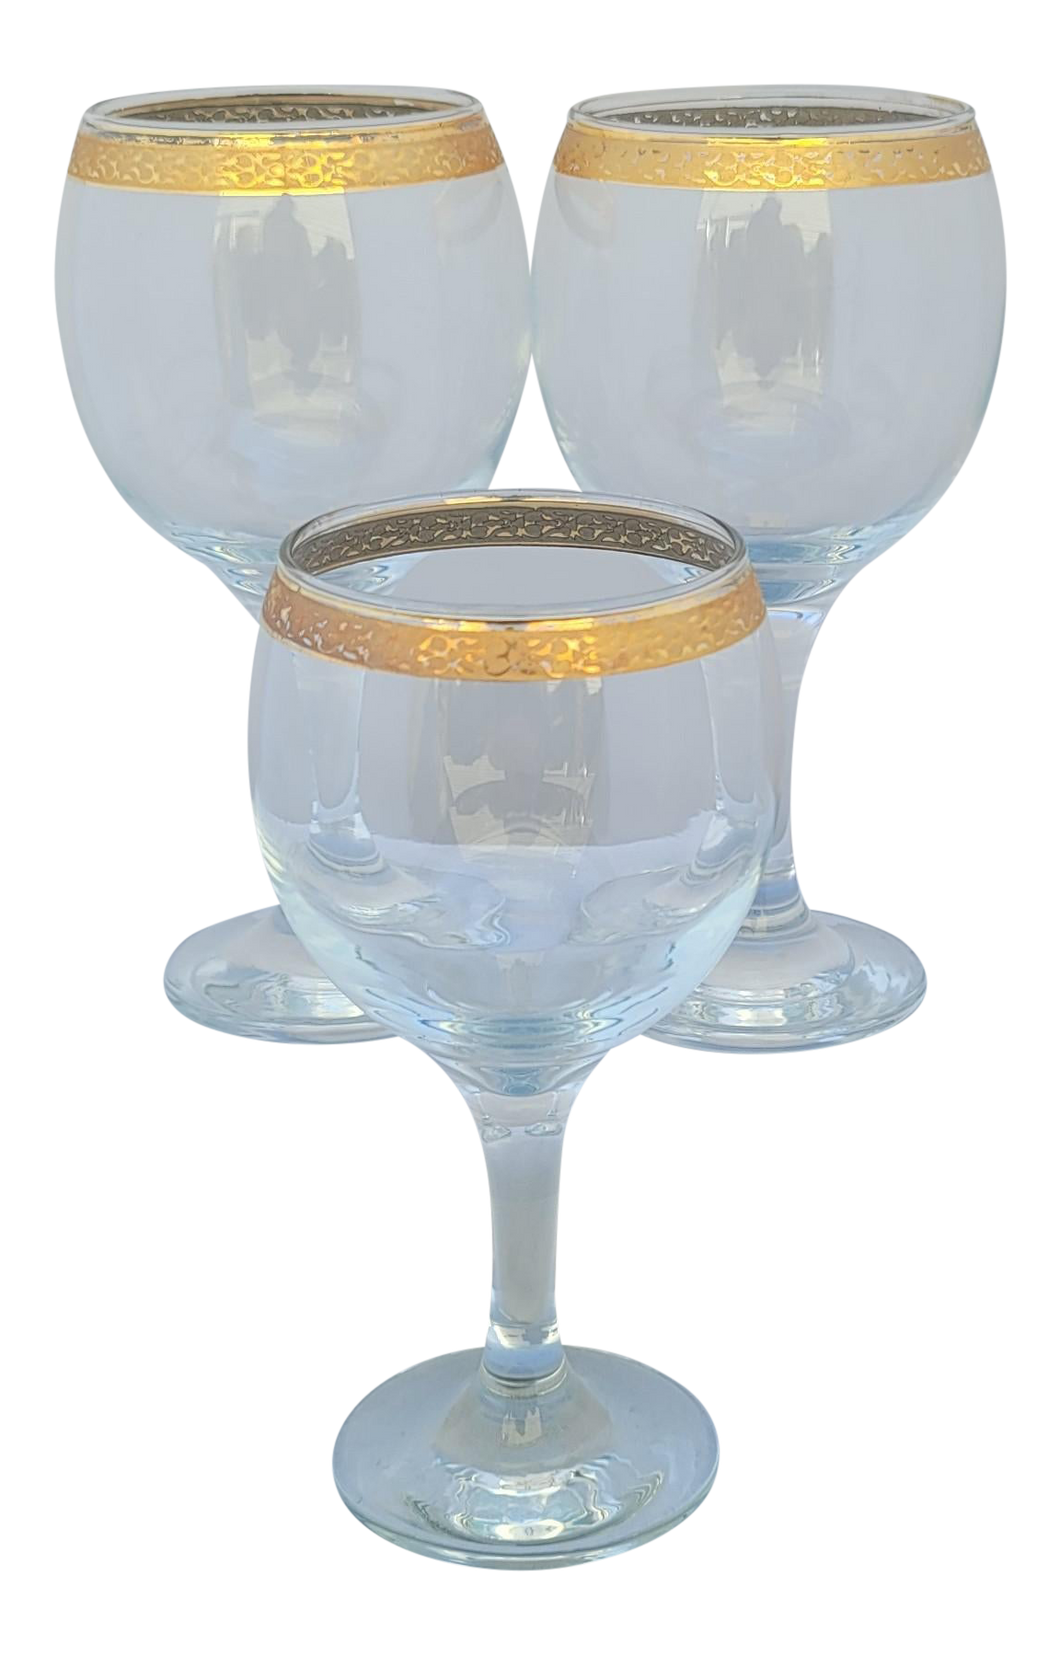 Vintage 1950s Circleware Crystal Classique Gold Rimmed Wine Goblets - Set of 3